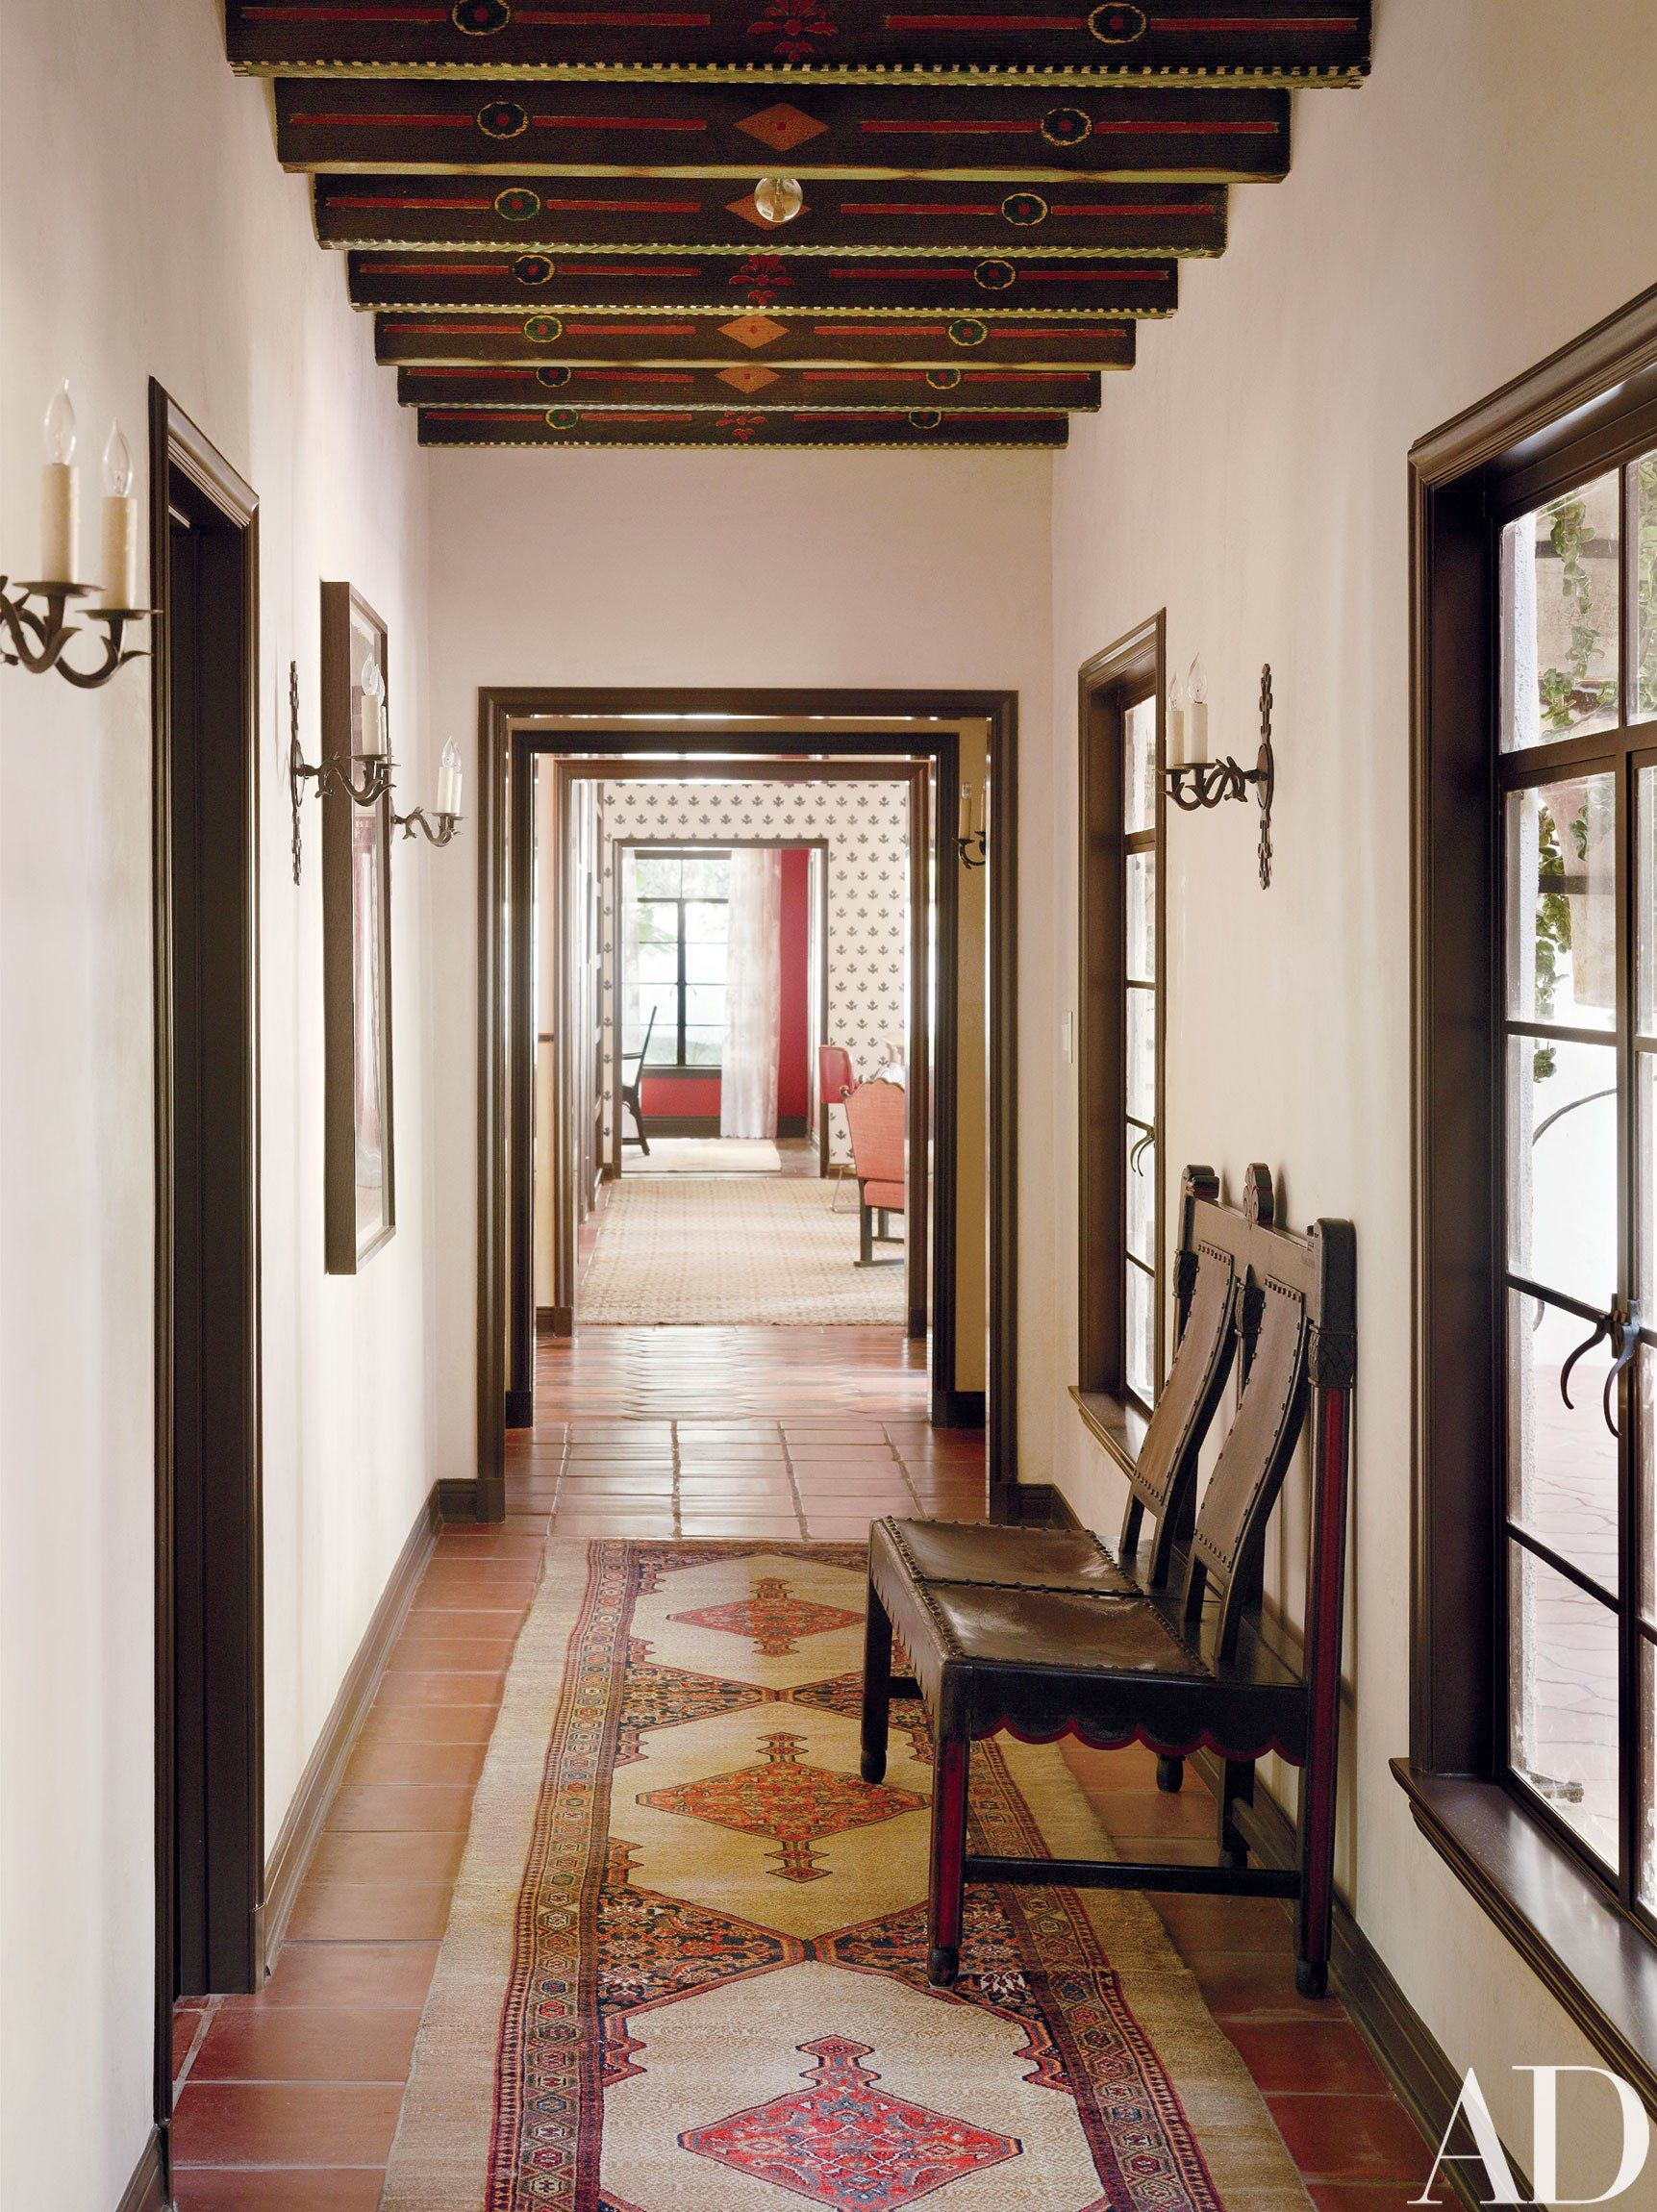 1930s house hallway ideas  Pin by Rachael Elizabeth on House  Pinterest  Architectural digest